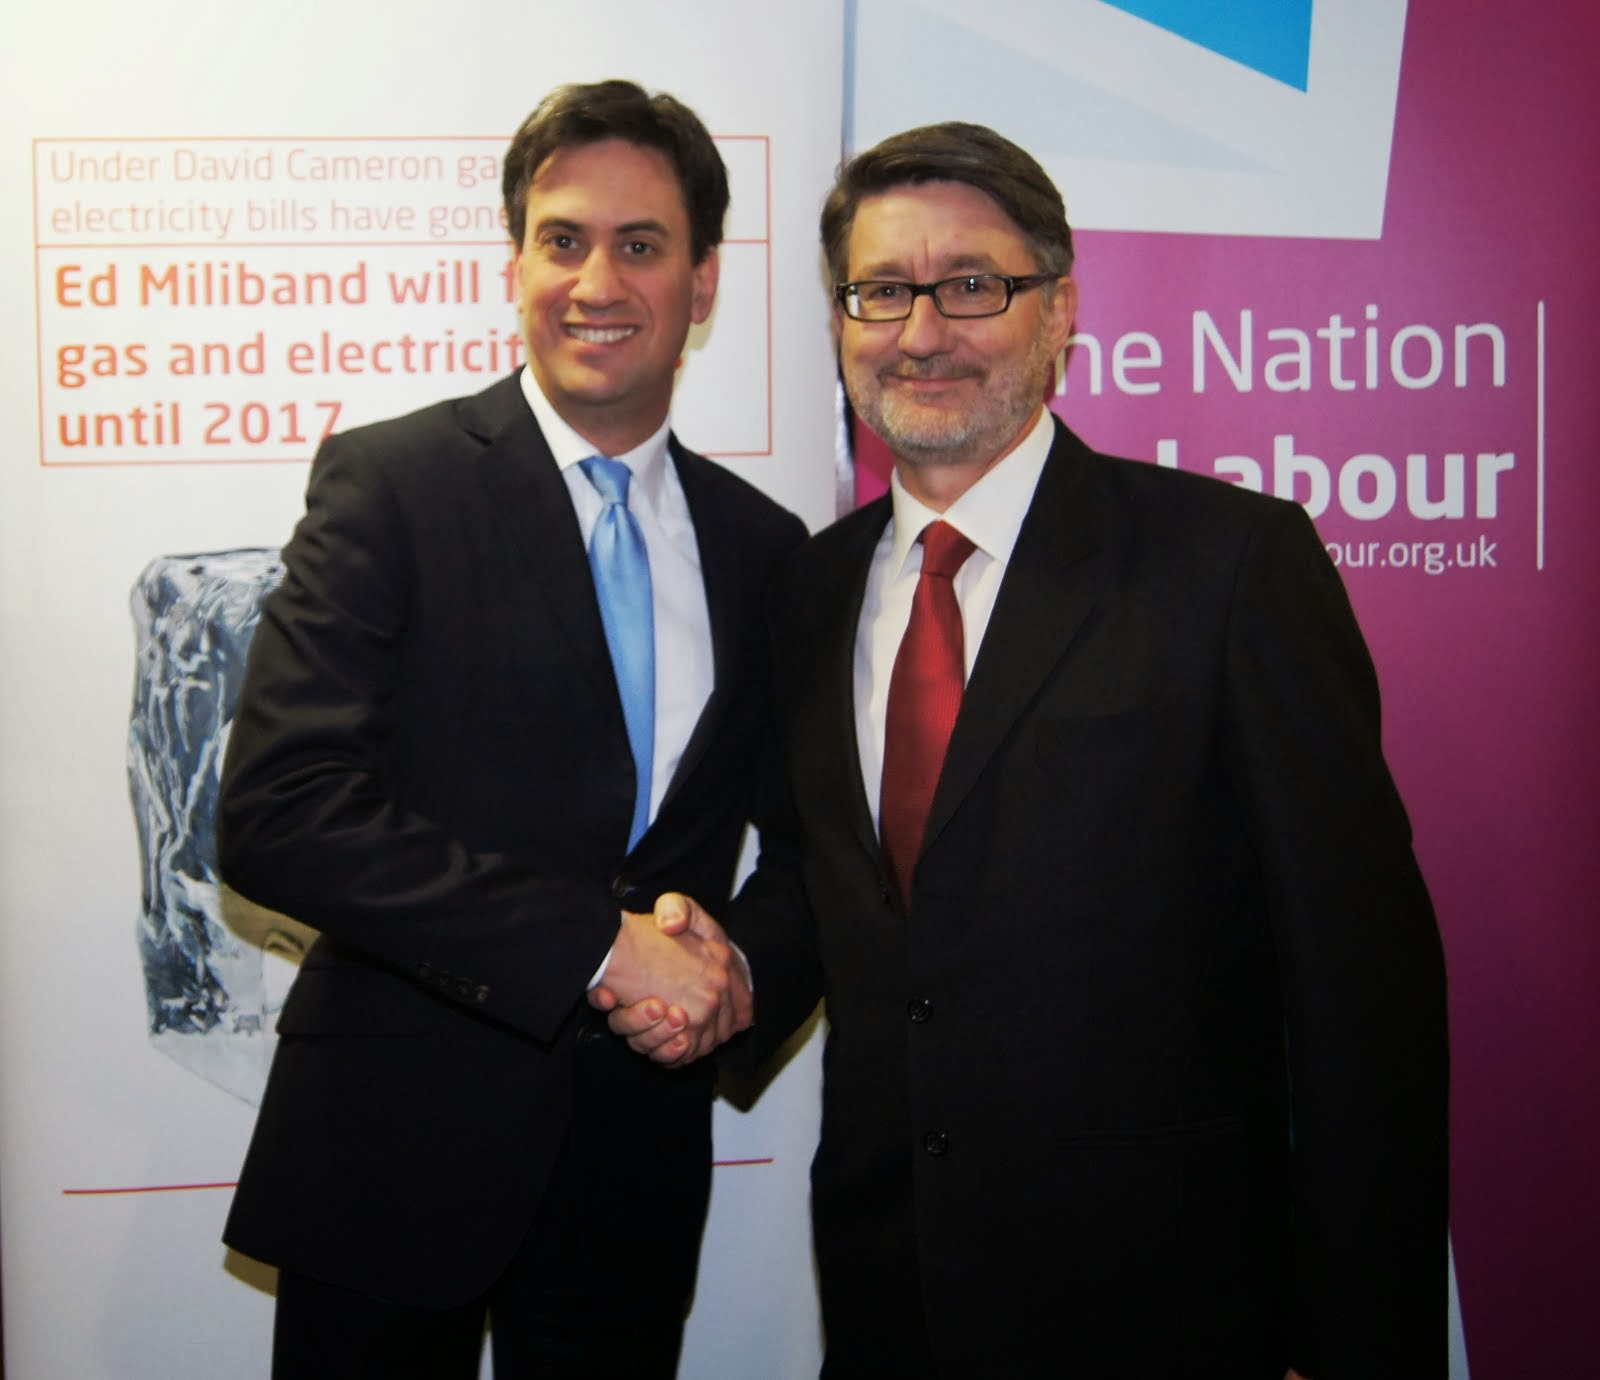 Mike Le-Surf & Ed Miliband